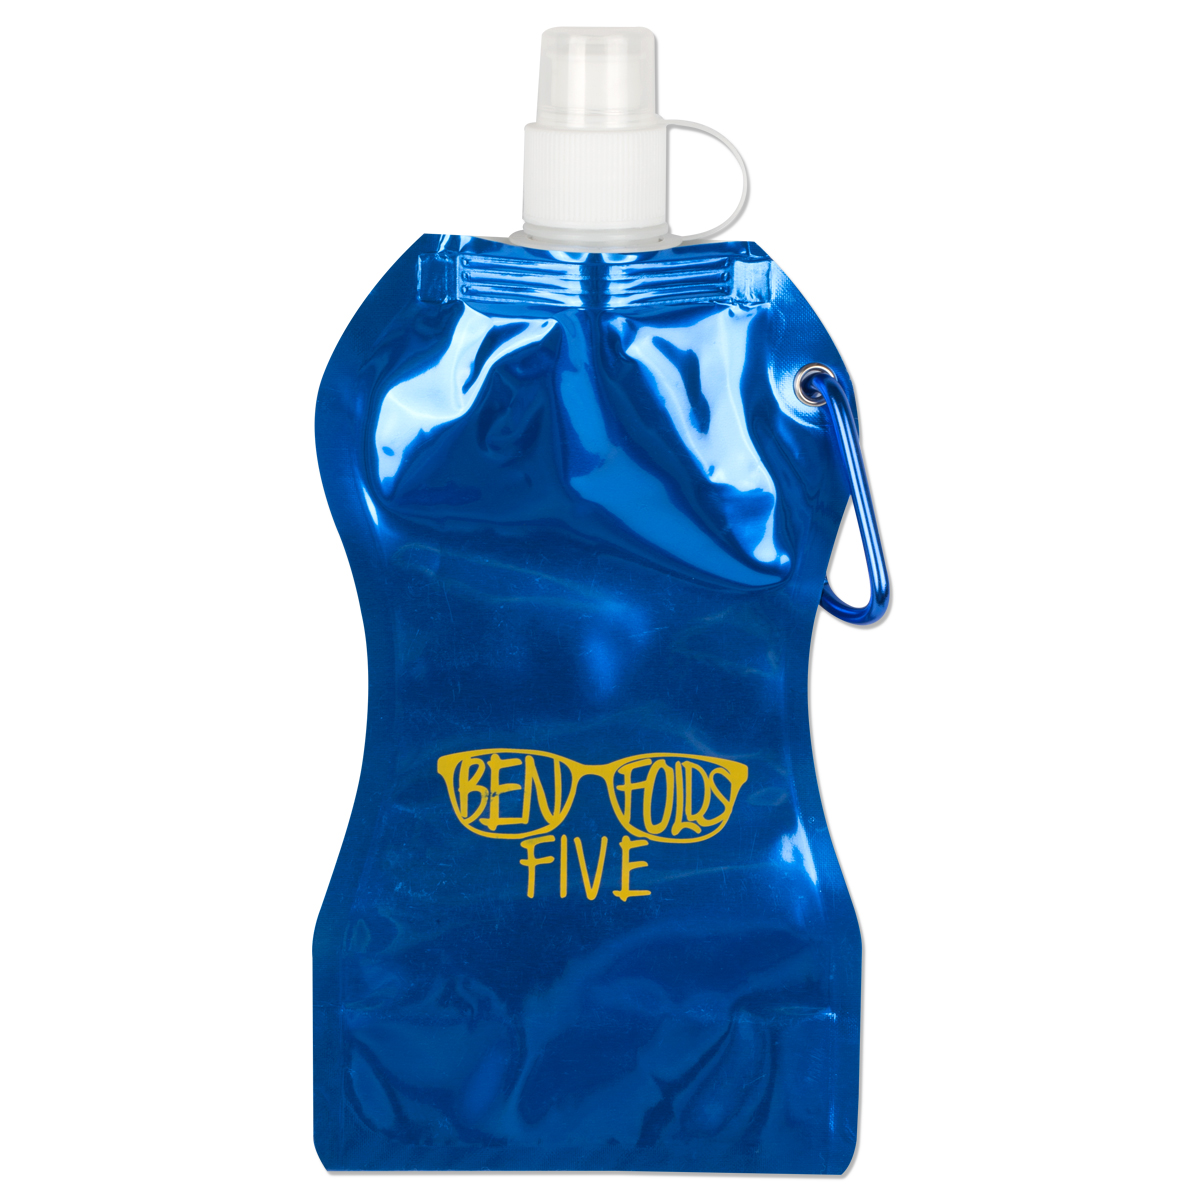 Ben Folds Five Water Pouch